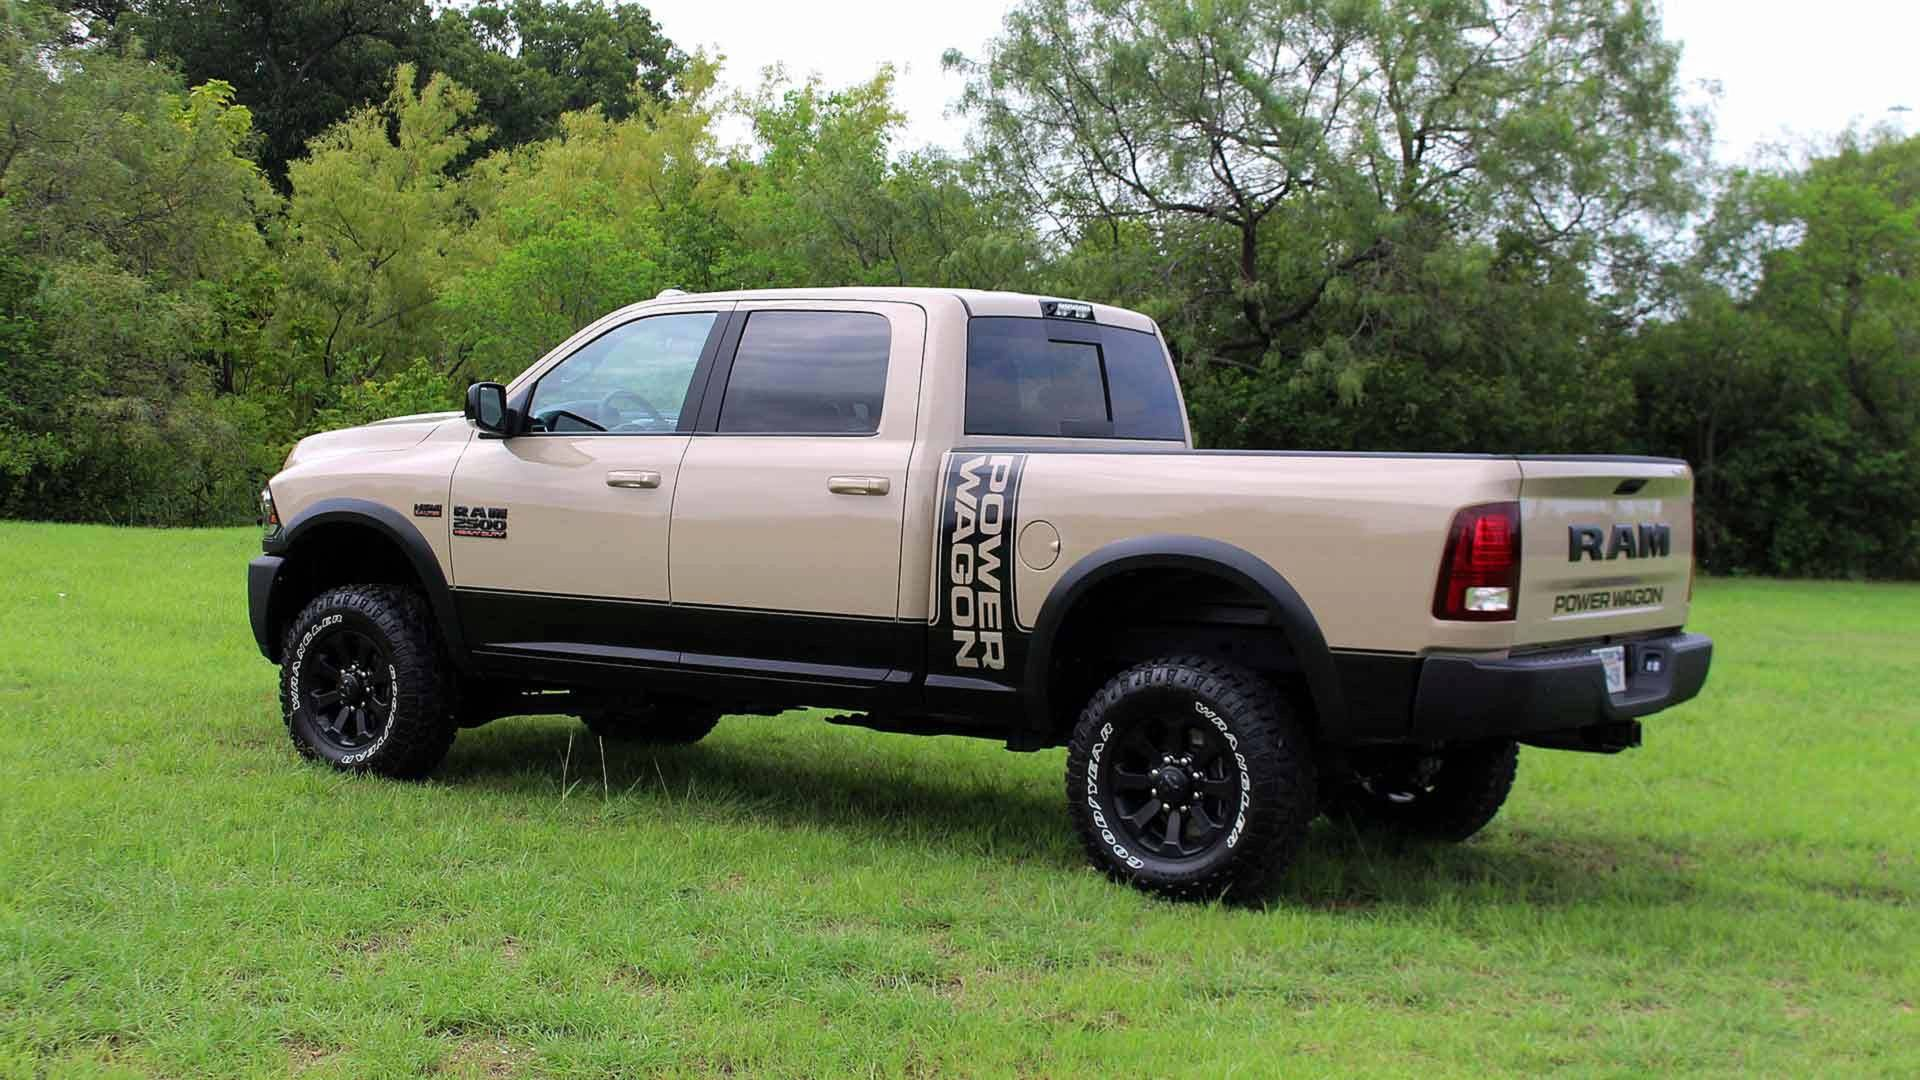 2018 Ram Power Wagon Now Available as Mojave Sand Limited ...